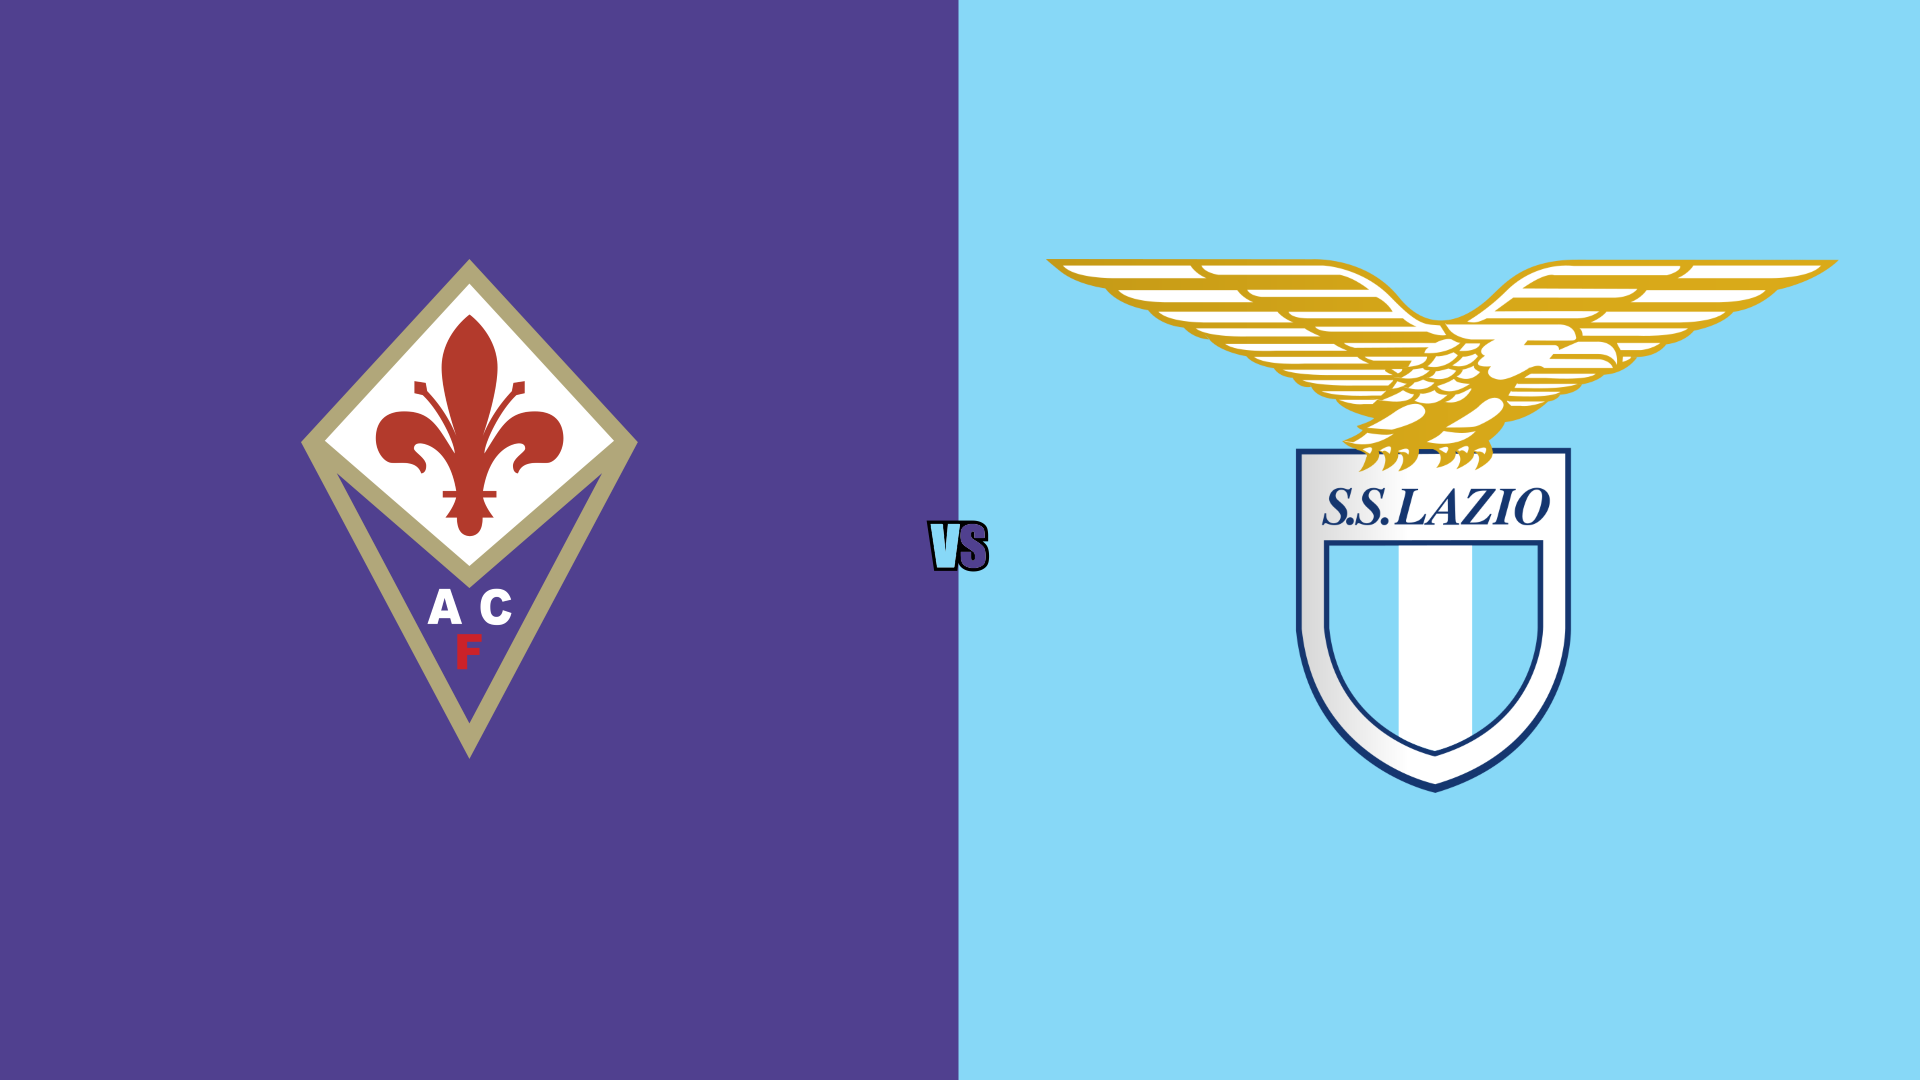 Fiorentina lazio betting tips how to bet on football games and win